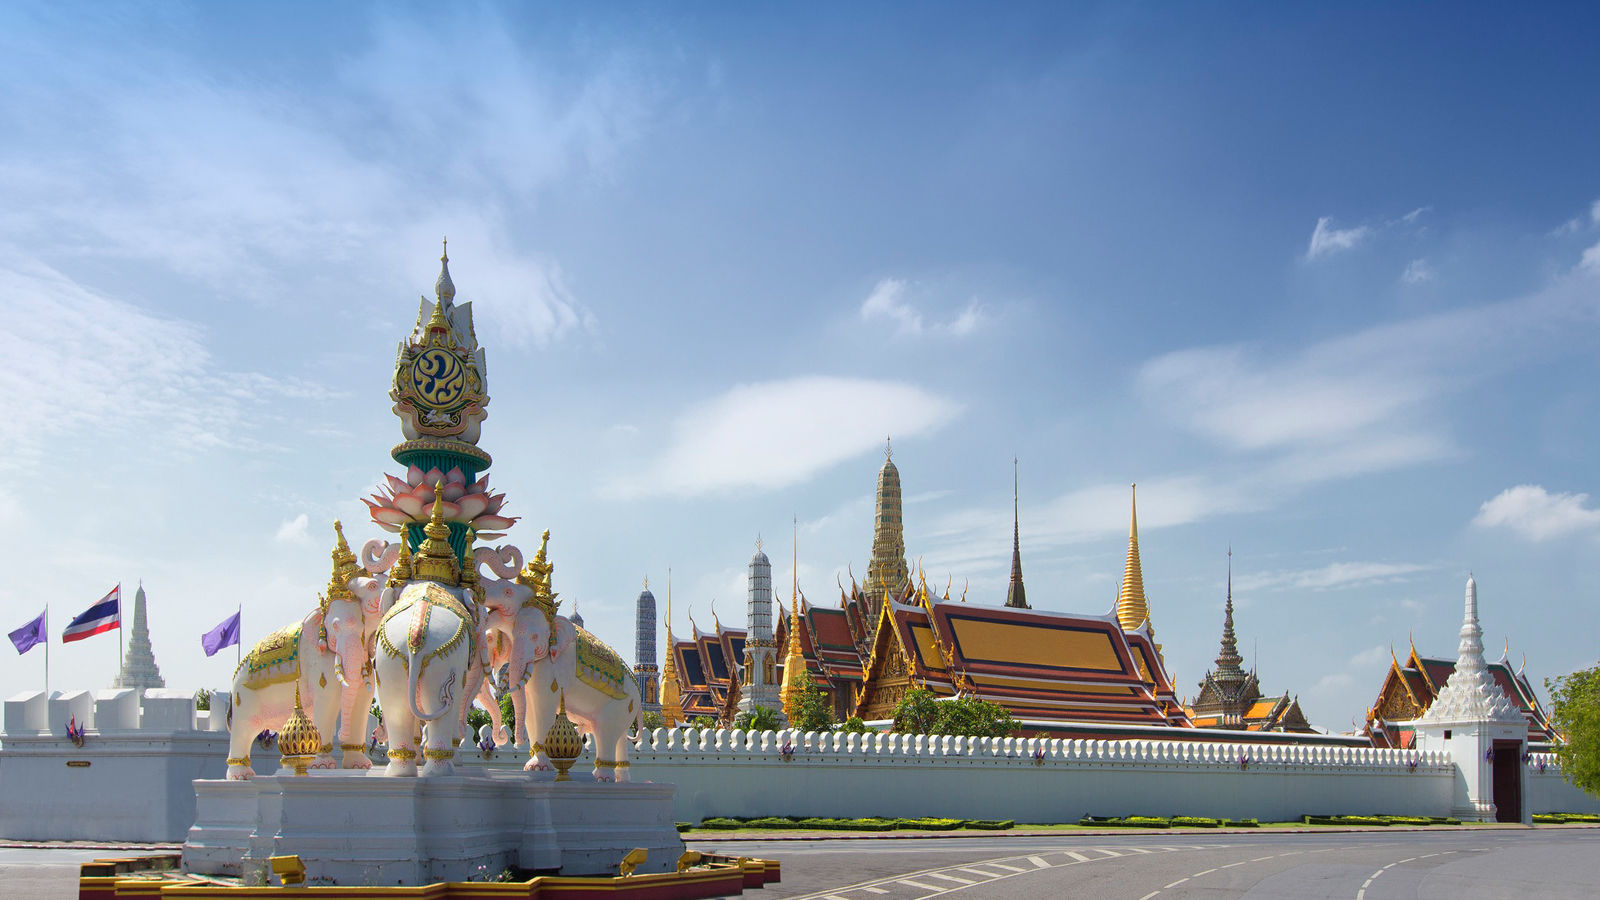 Grand Palace and Temple of the Emerald Buddha